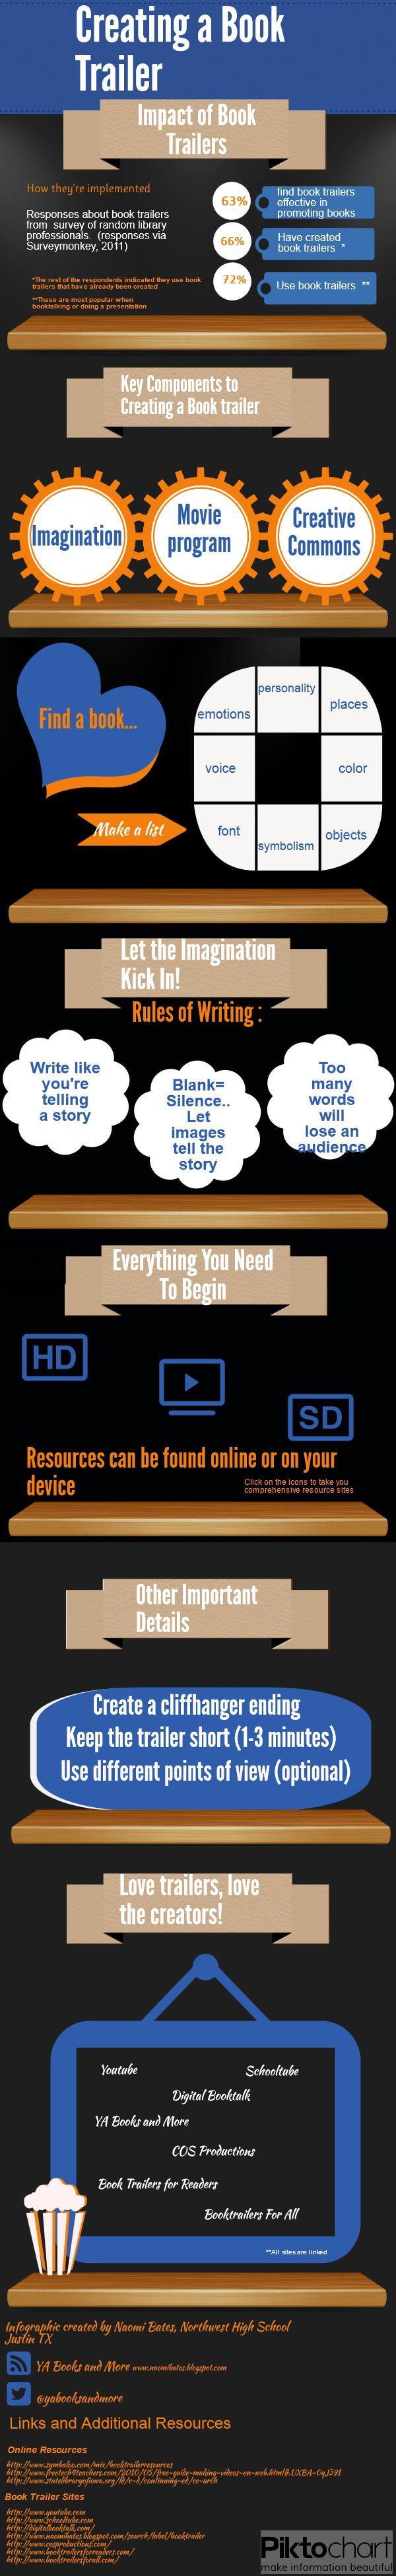 How To Make A Book Trailer On Imovie : Best images about reading promotion ideas on pinterest